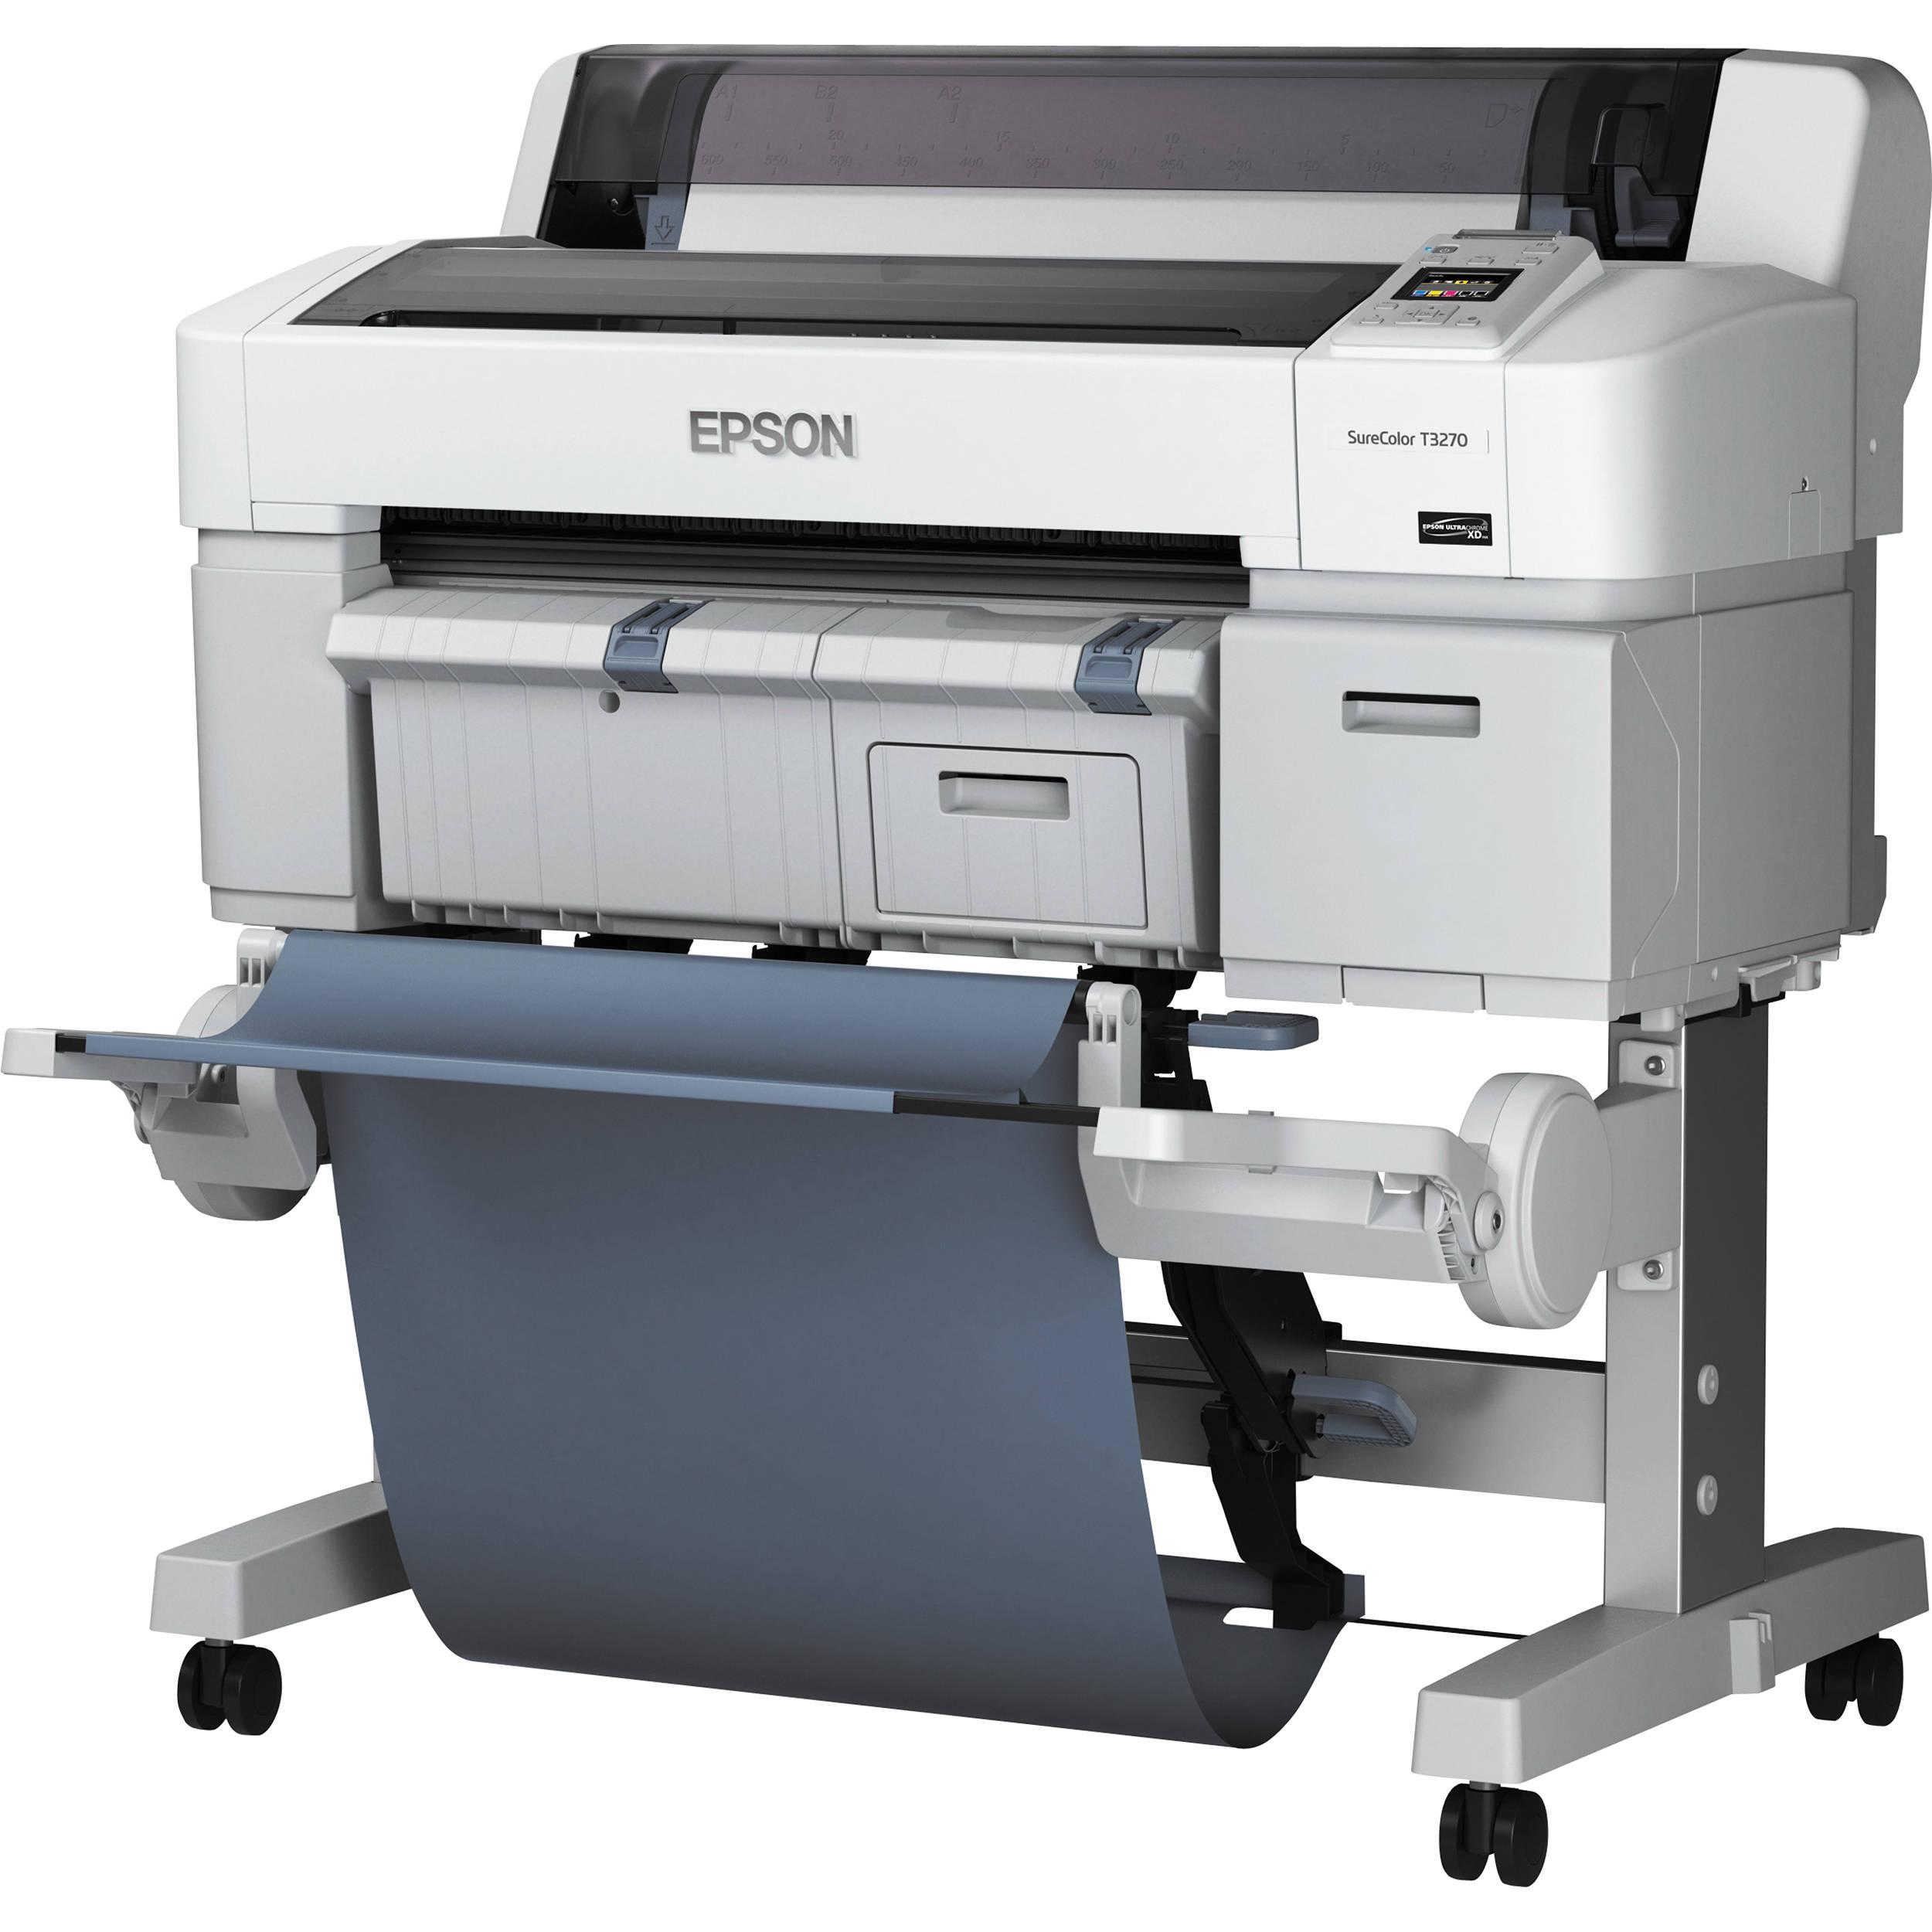 "IMPRESORA EPSON SURE COLOR LARGO FORMATO 24"" T3270 PLOTTER"